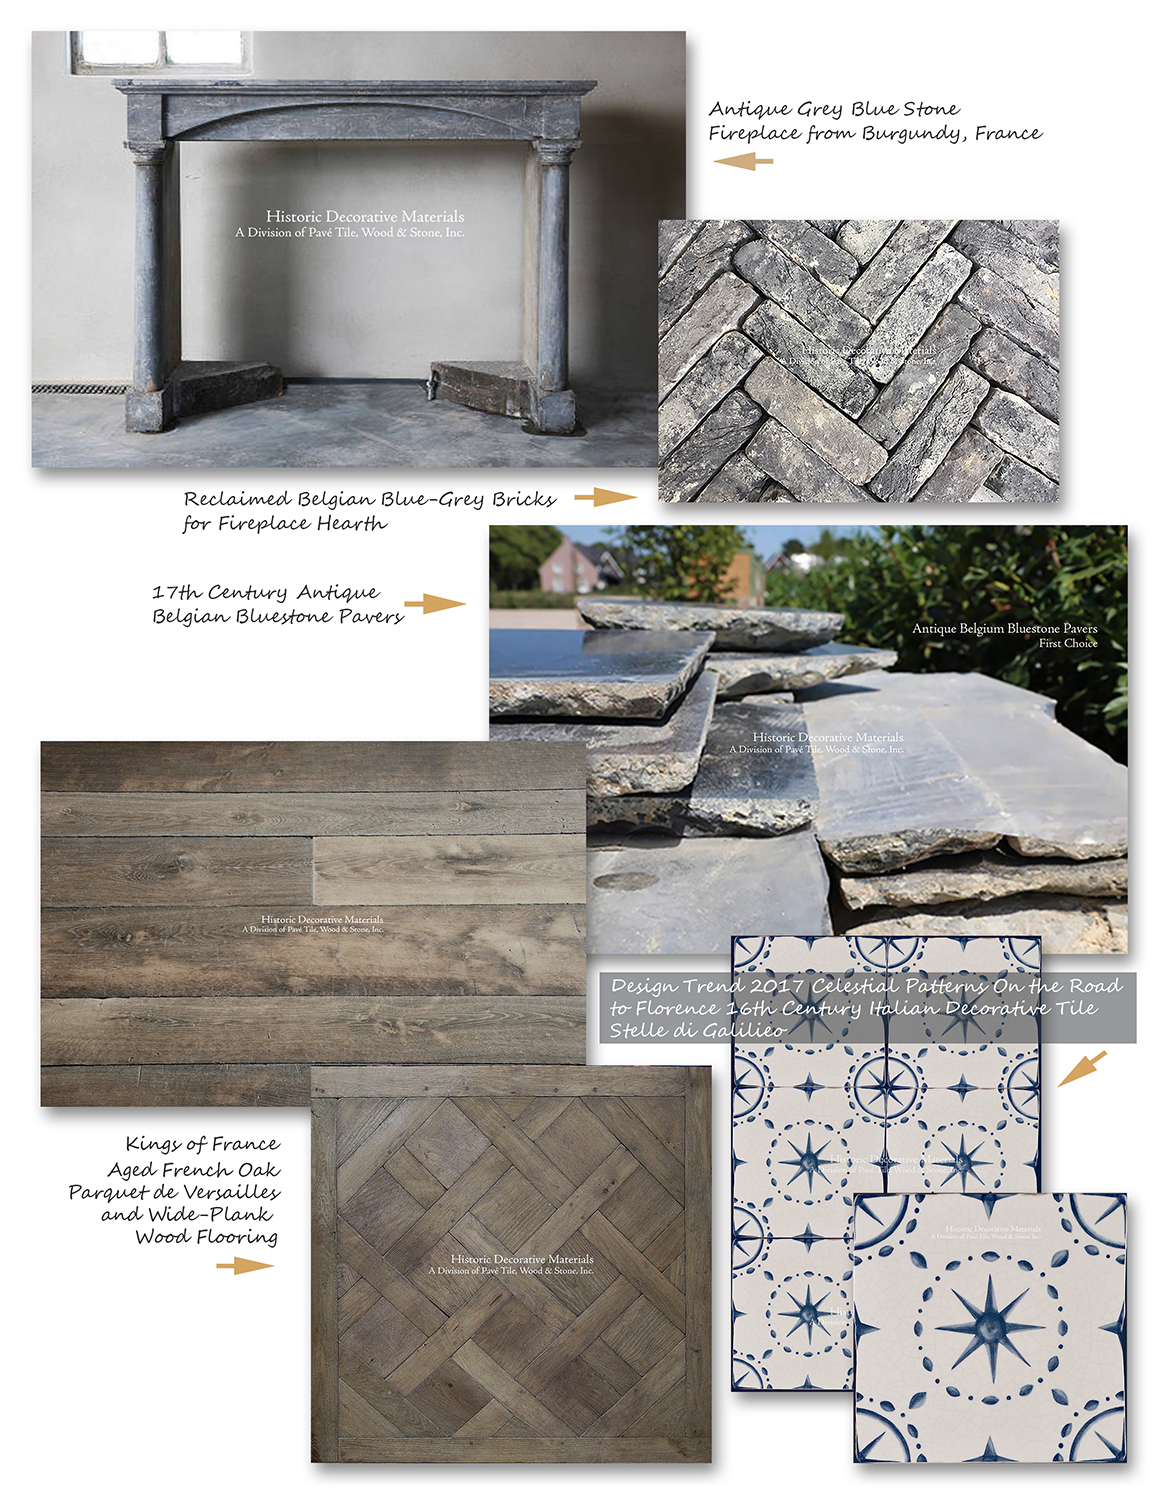 Aesthetic Paver Stone Tom Brady and Gisele Bündchenu0027s French and Belgian Farmhouse Aesthetic in LA